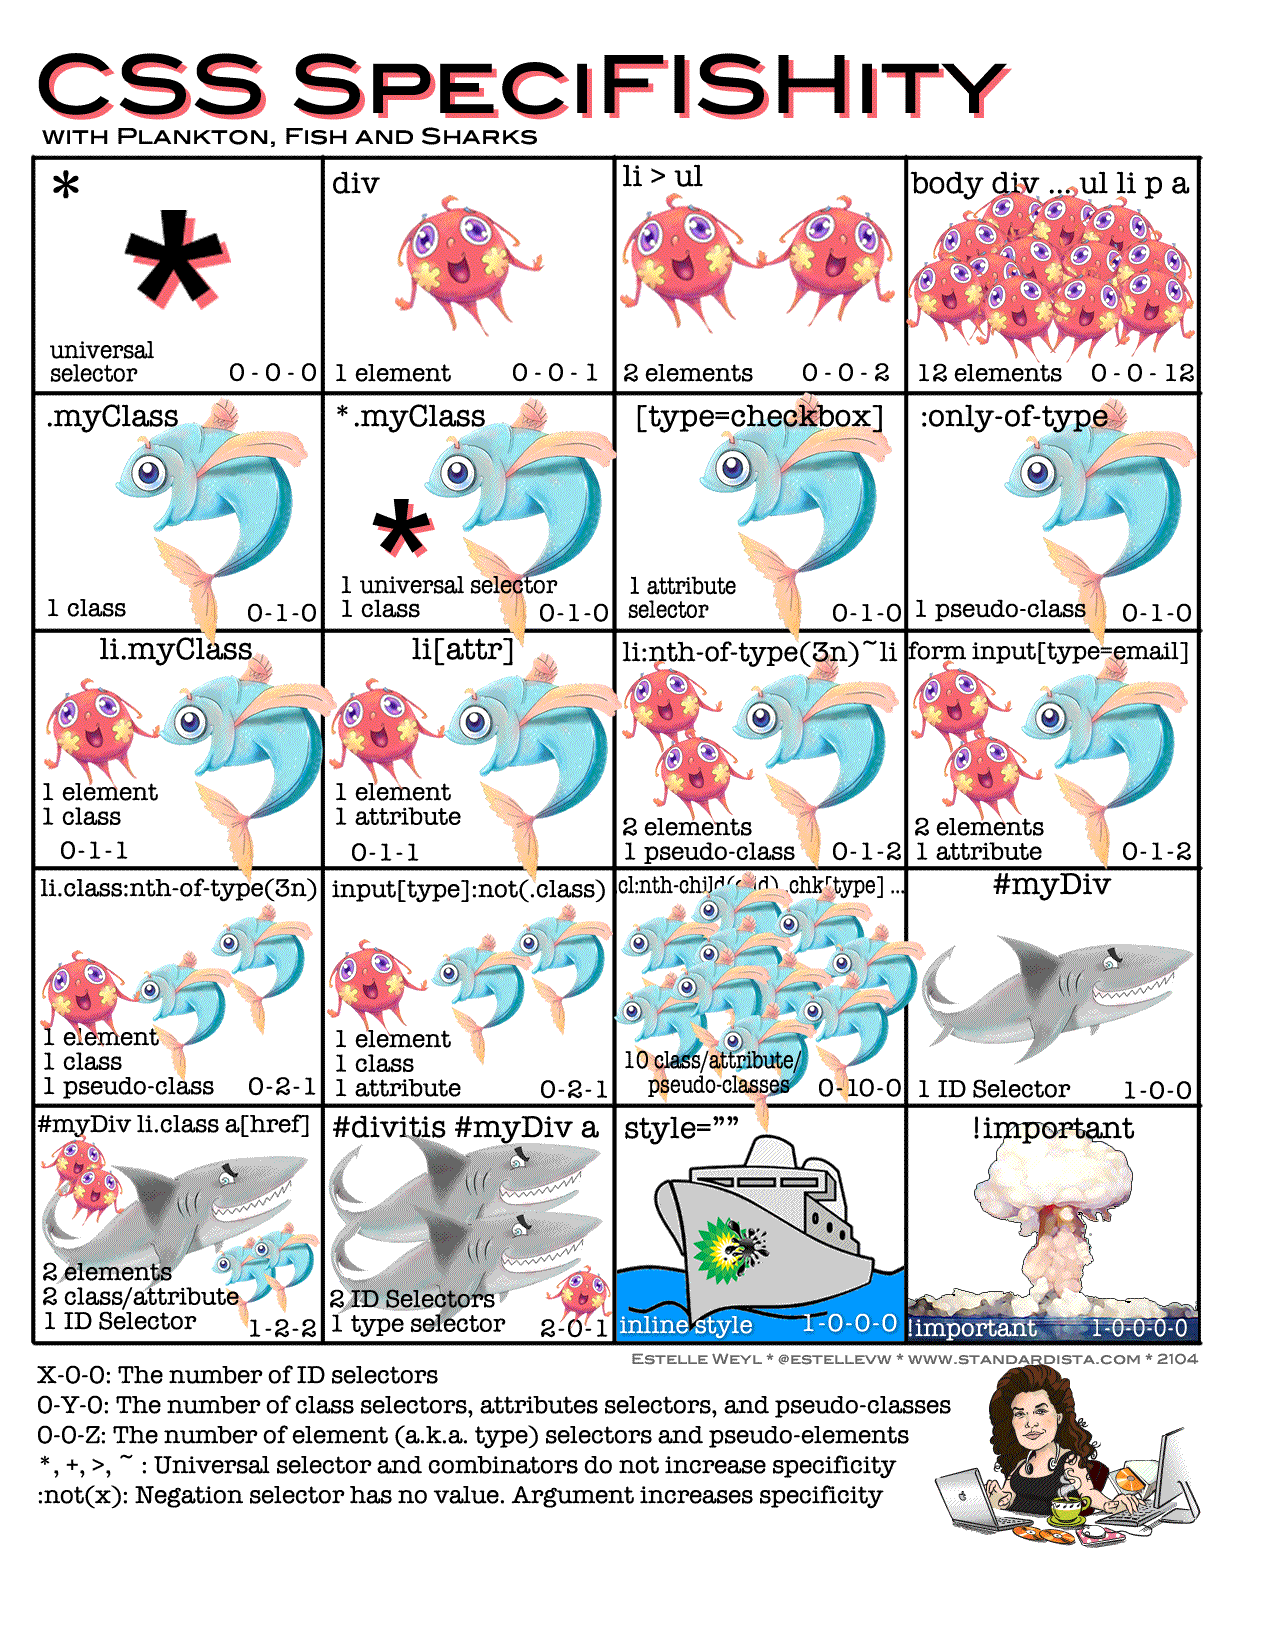 specifishity chart